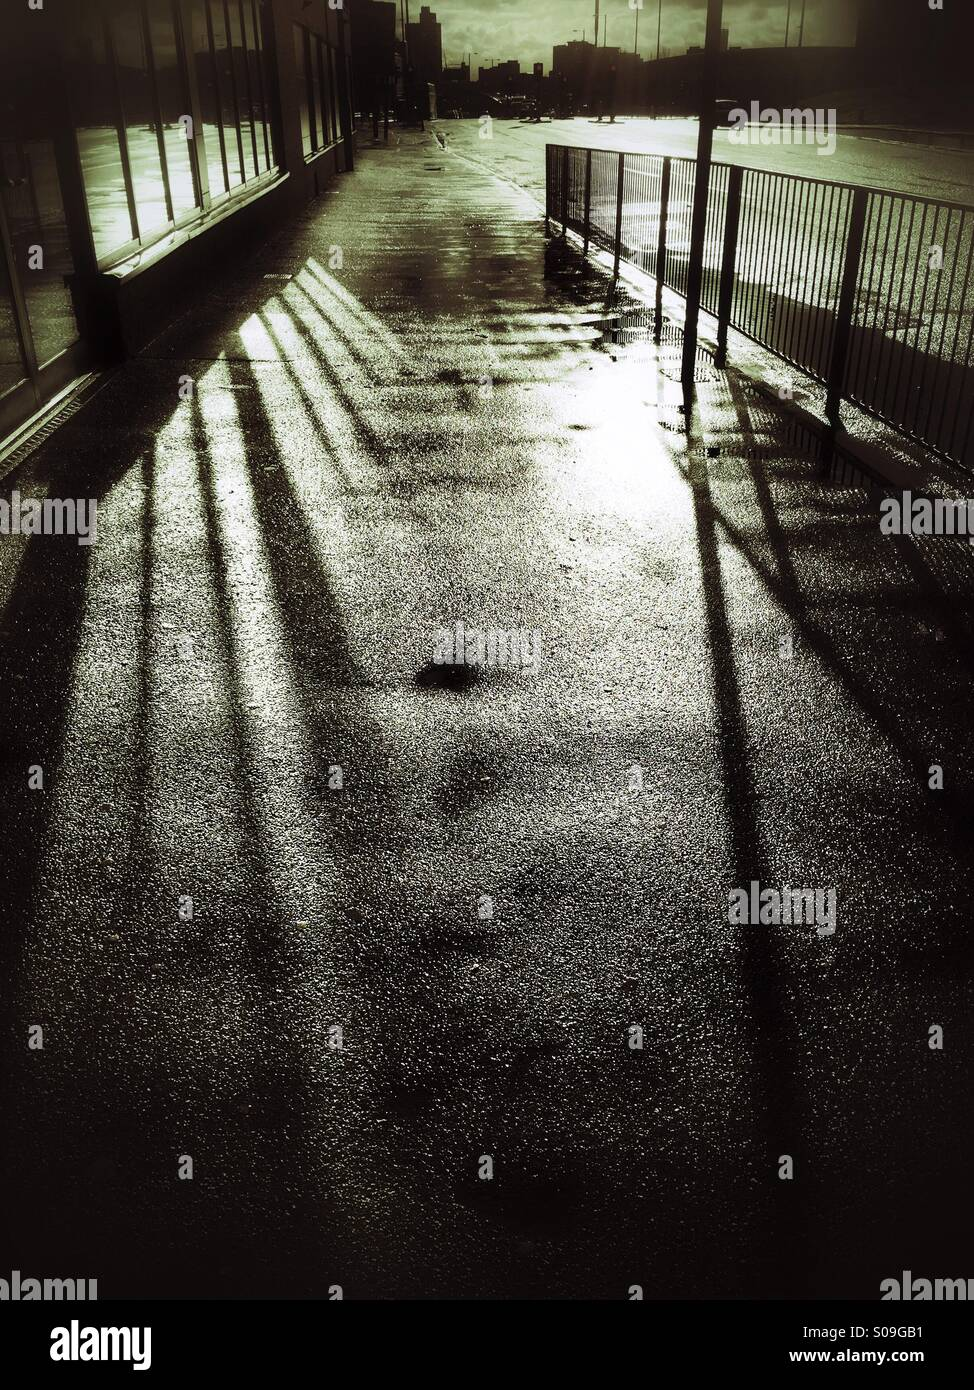 Shadowy pavement - Stock Image